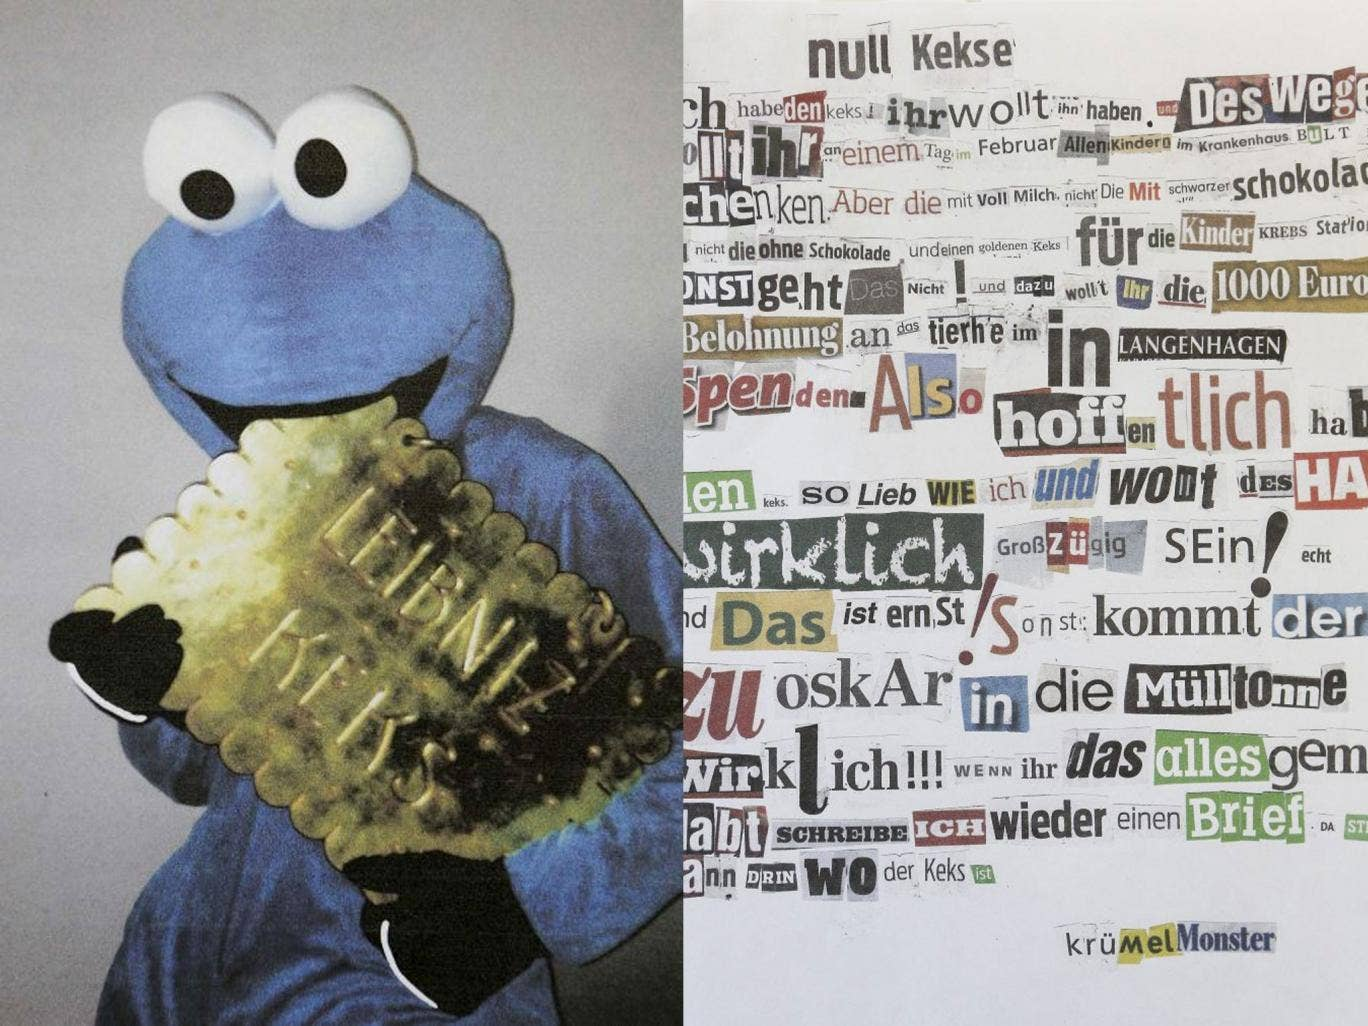 The alleged cookie monster thief and the ransom note